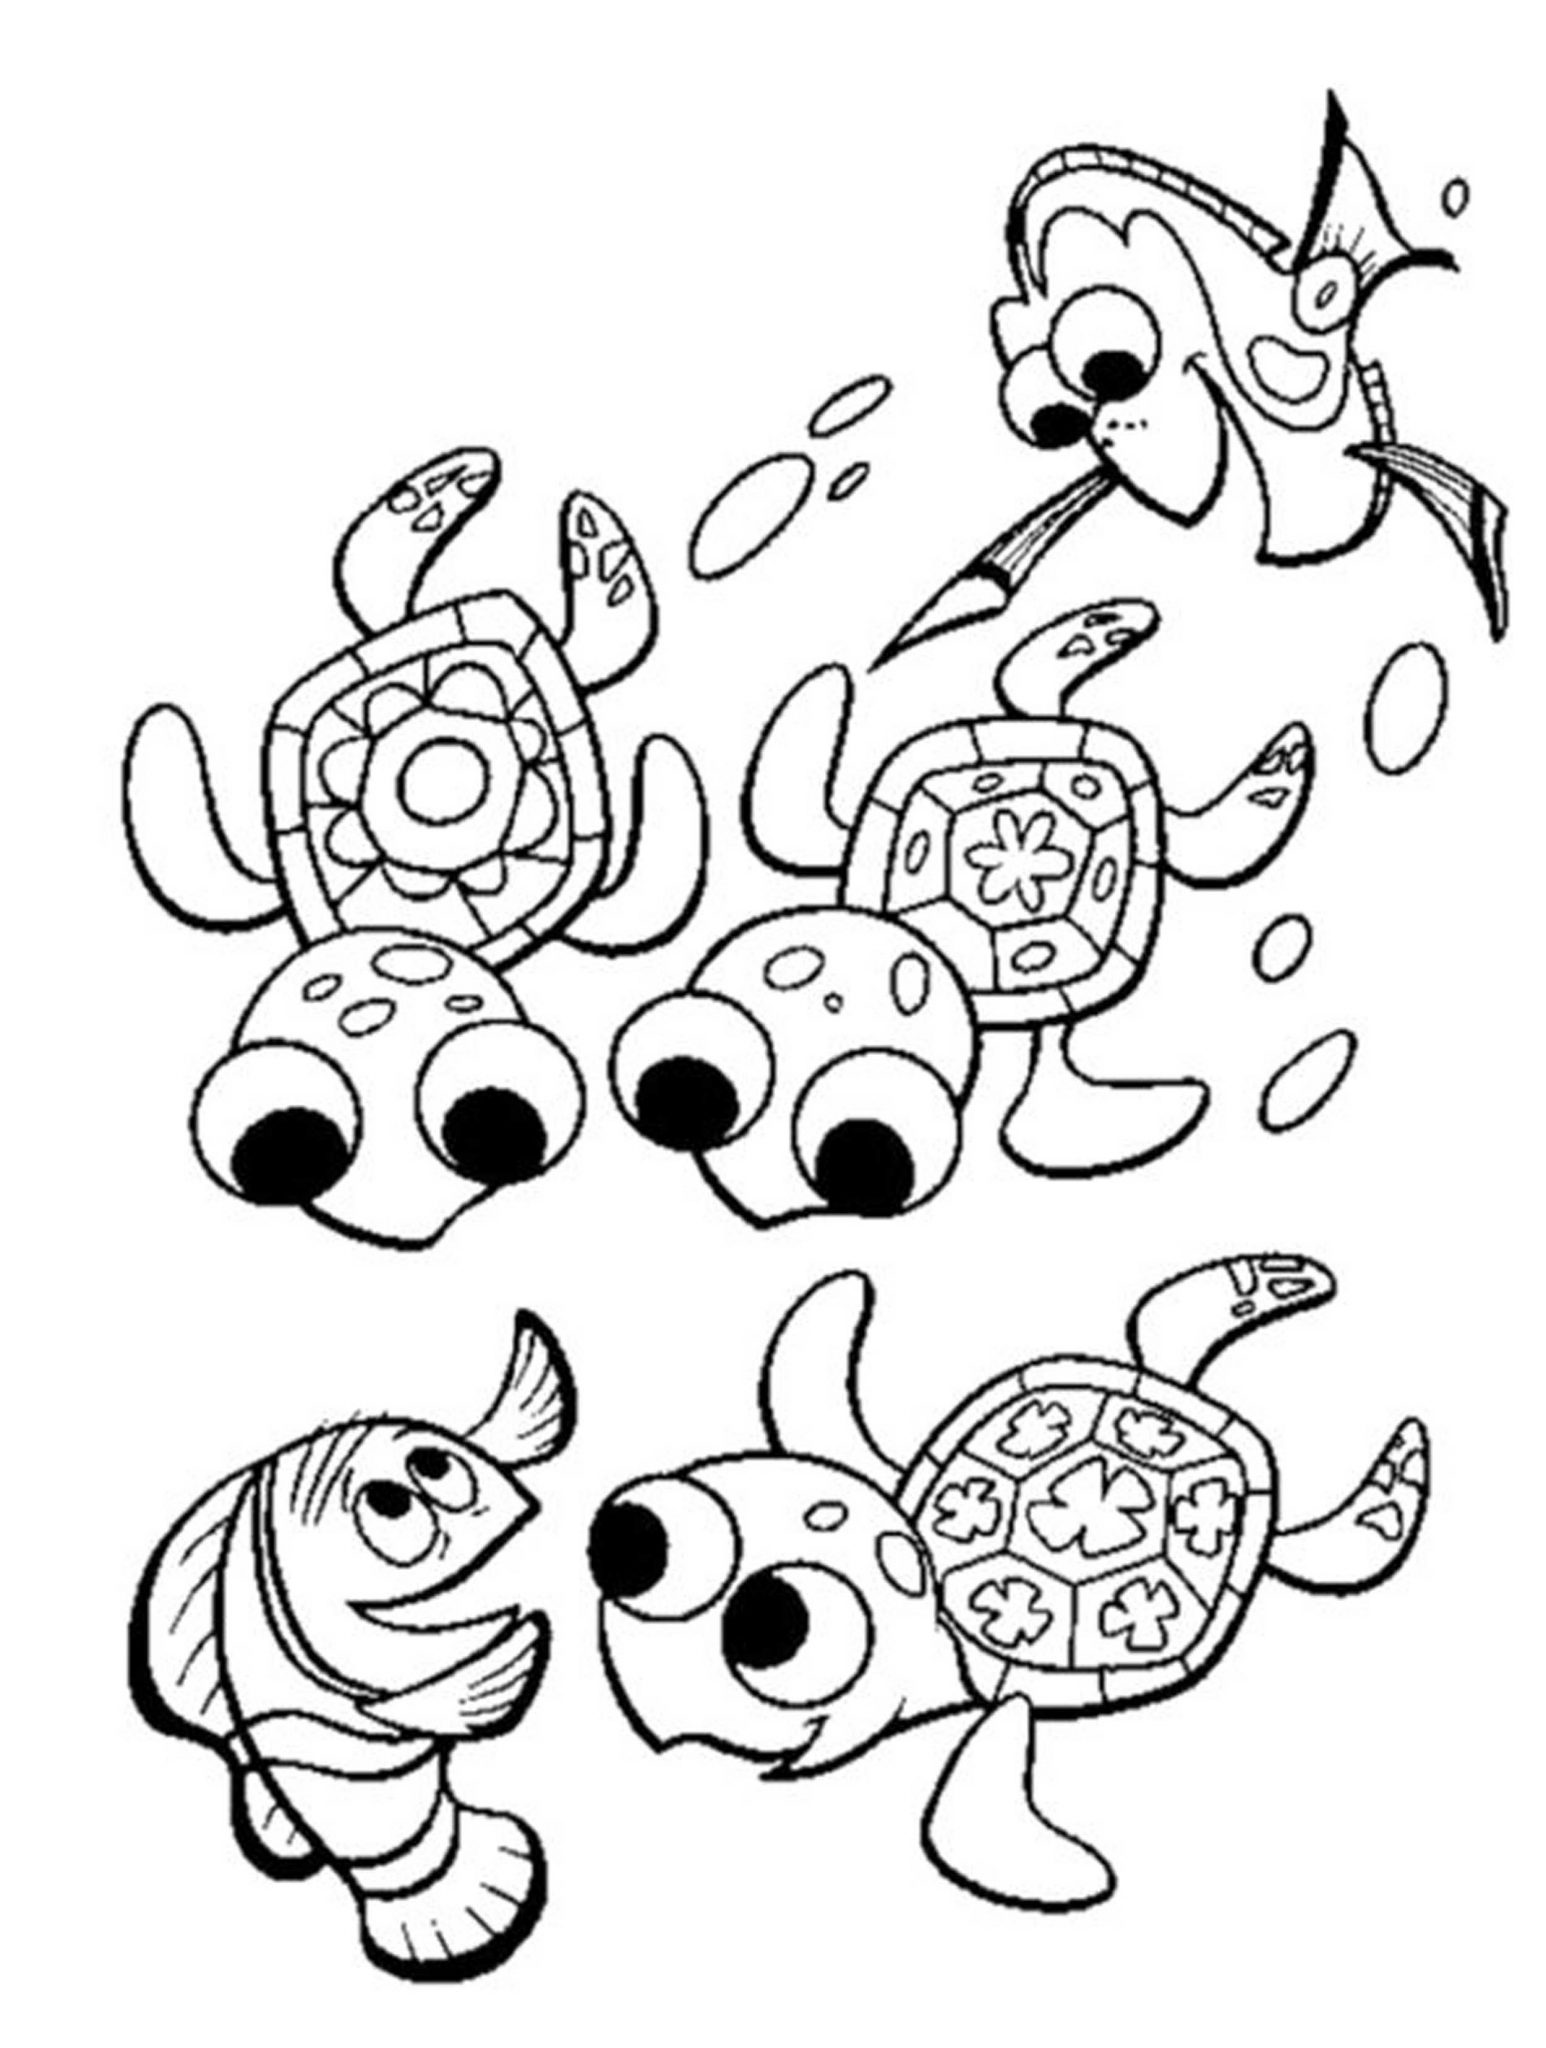 coloring turtles print download turtle coloring pages as the turtles coloring